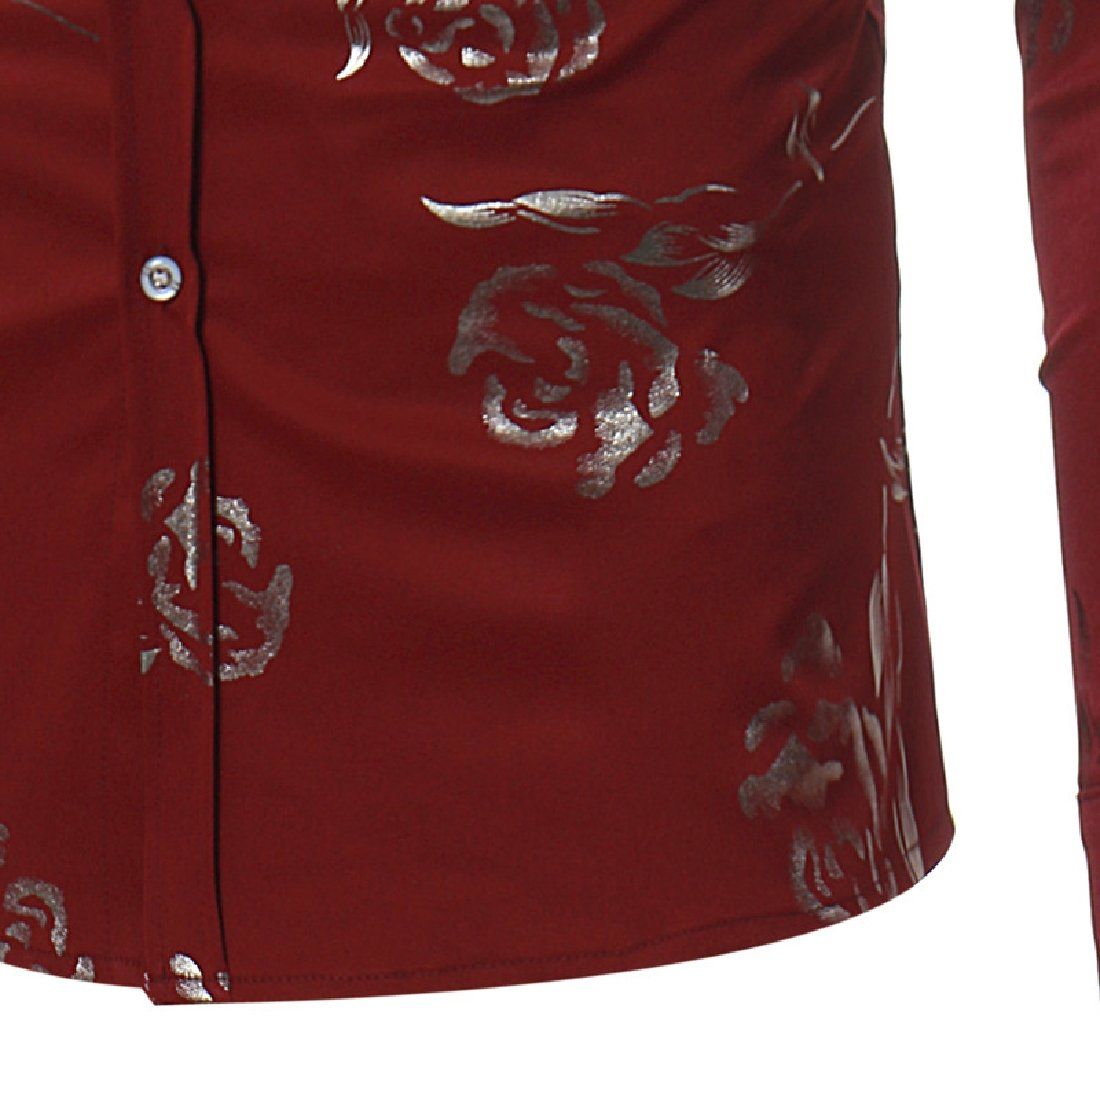 YUNY Mens Floral Shirts Gold Rose Printed Slim Fit Long Sleeve Dress Button Down Shirts Wine Red L